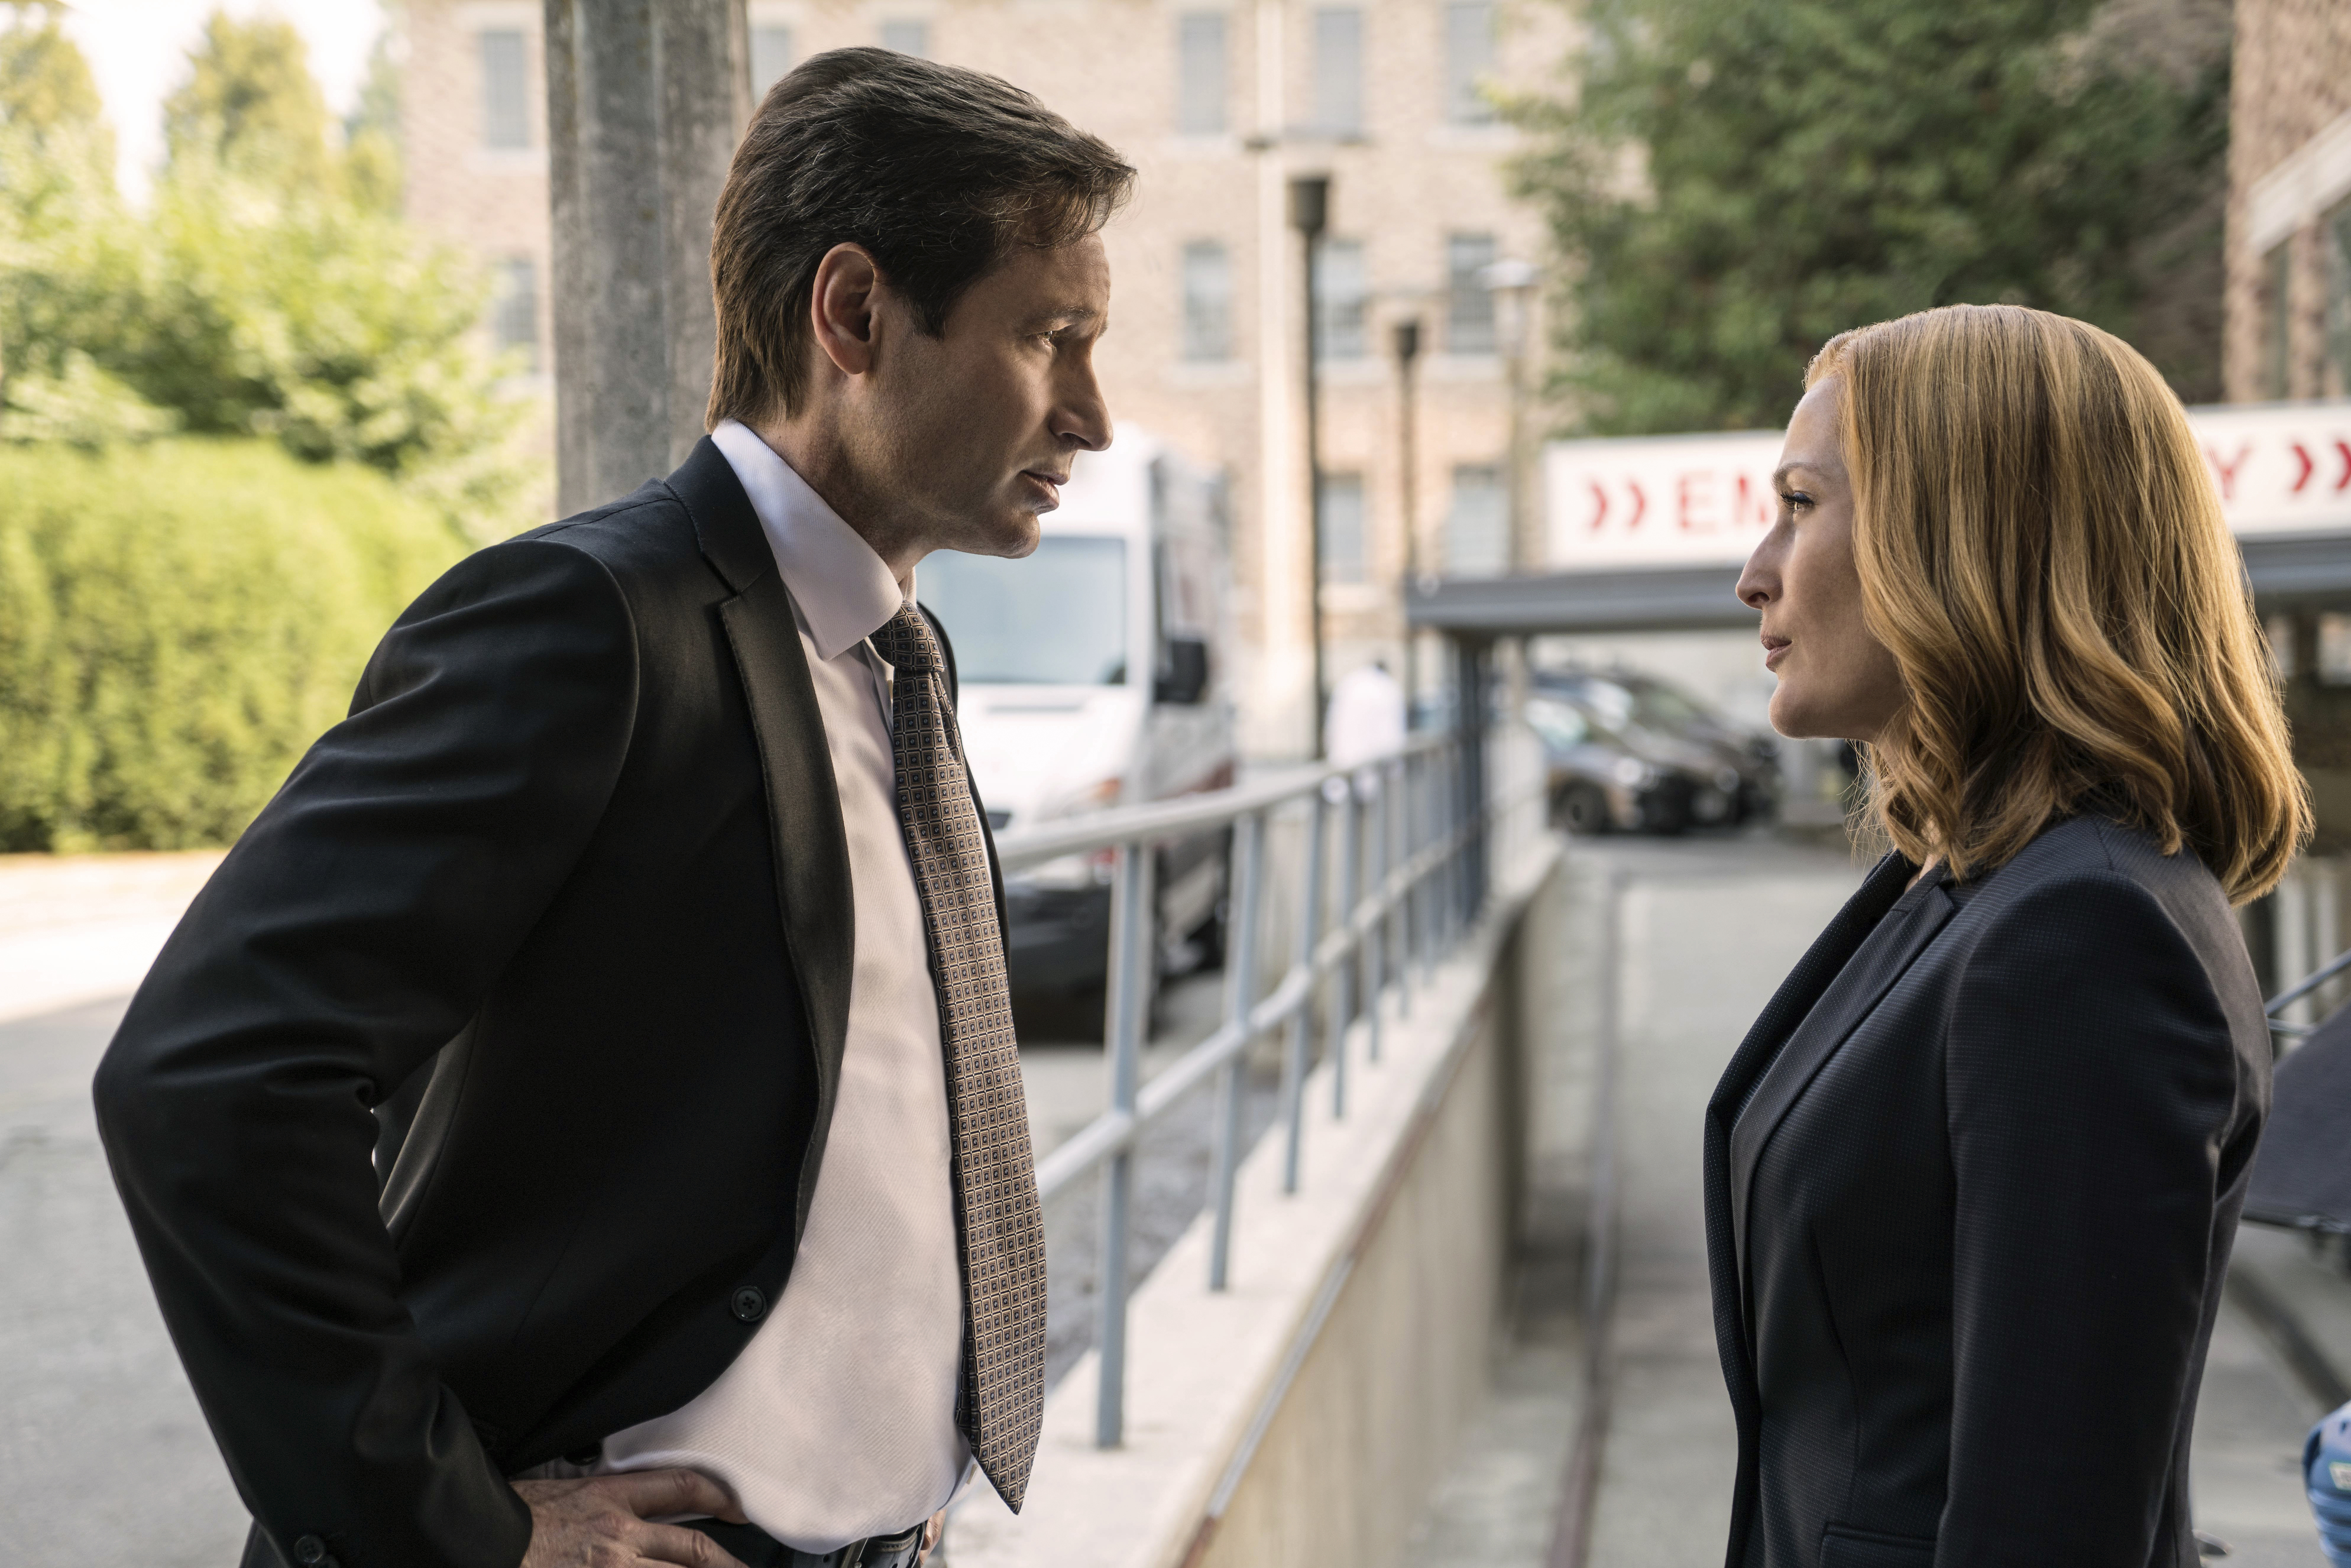 Review: 'The X-Files' Season 10 Episode 2 'Founder's